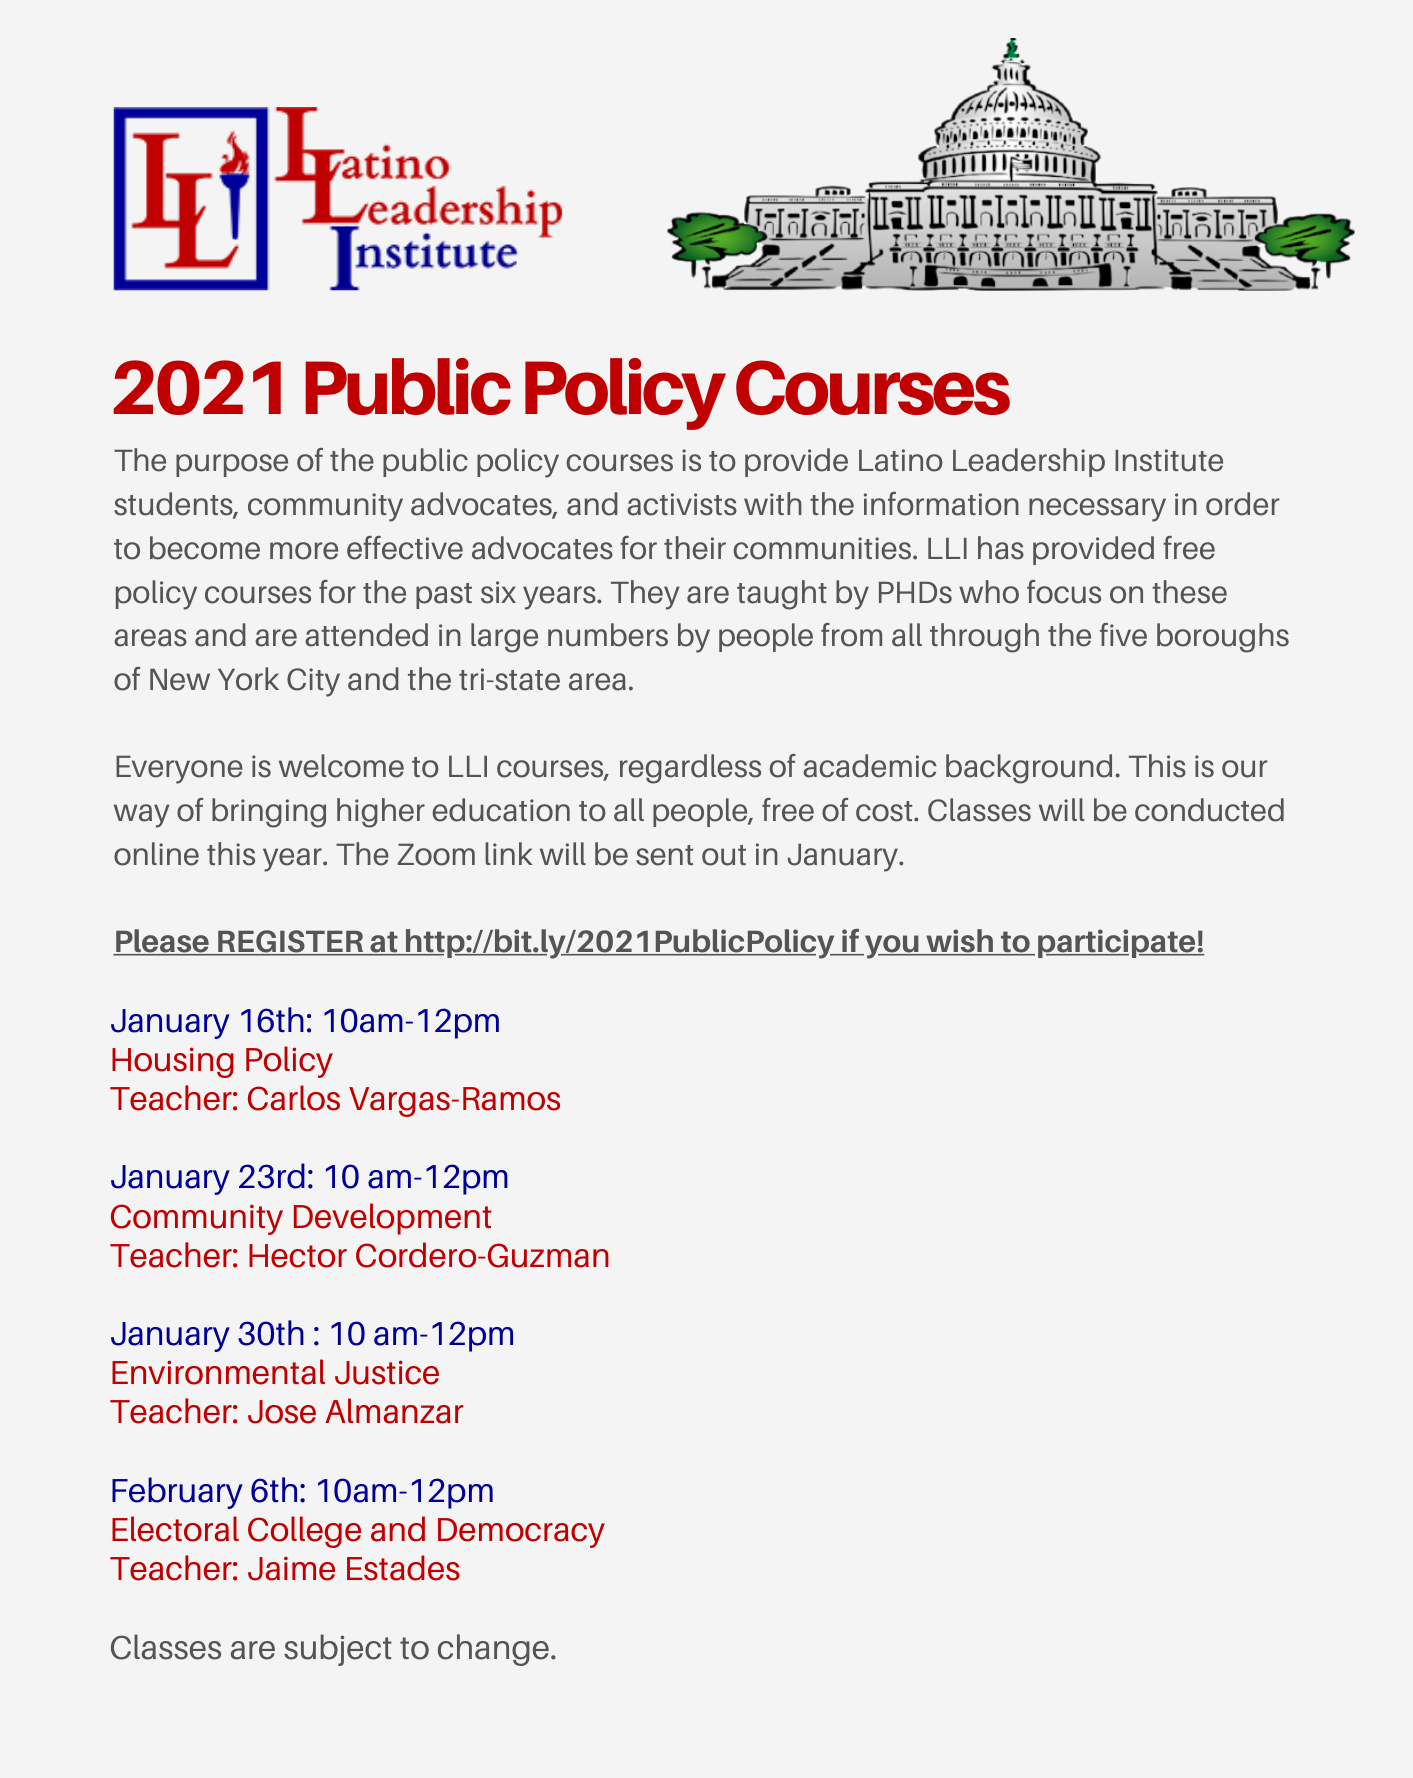 Public Policy Courses Week 3